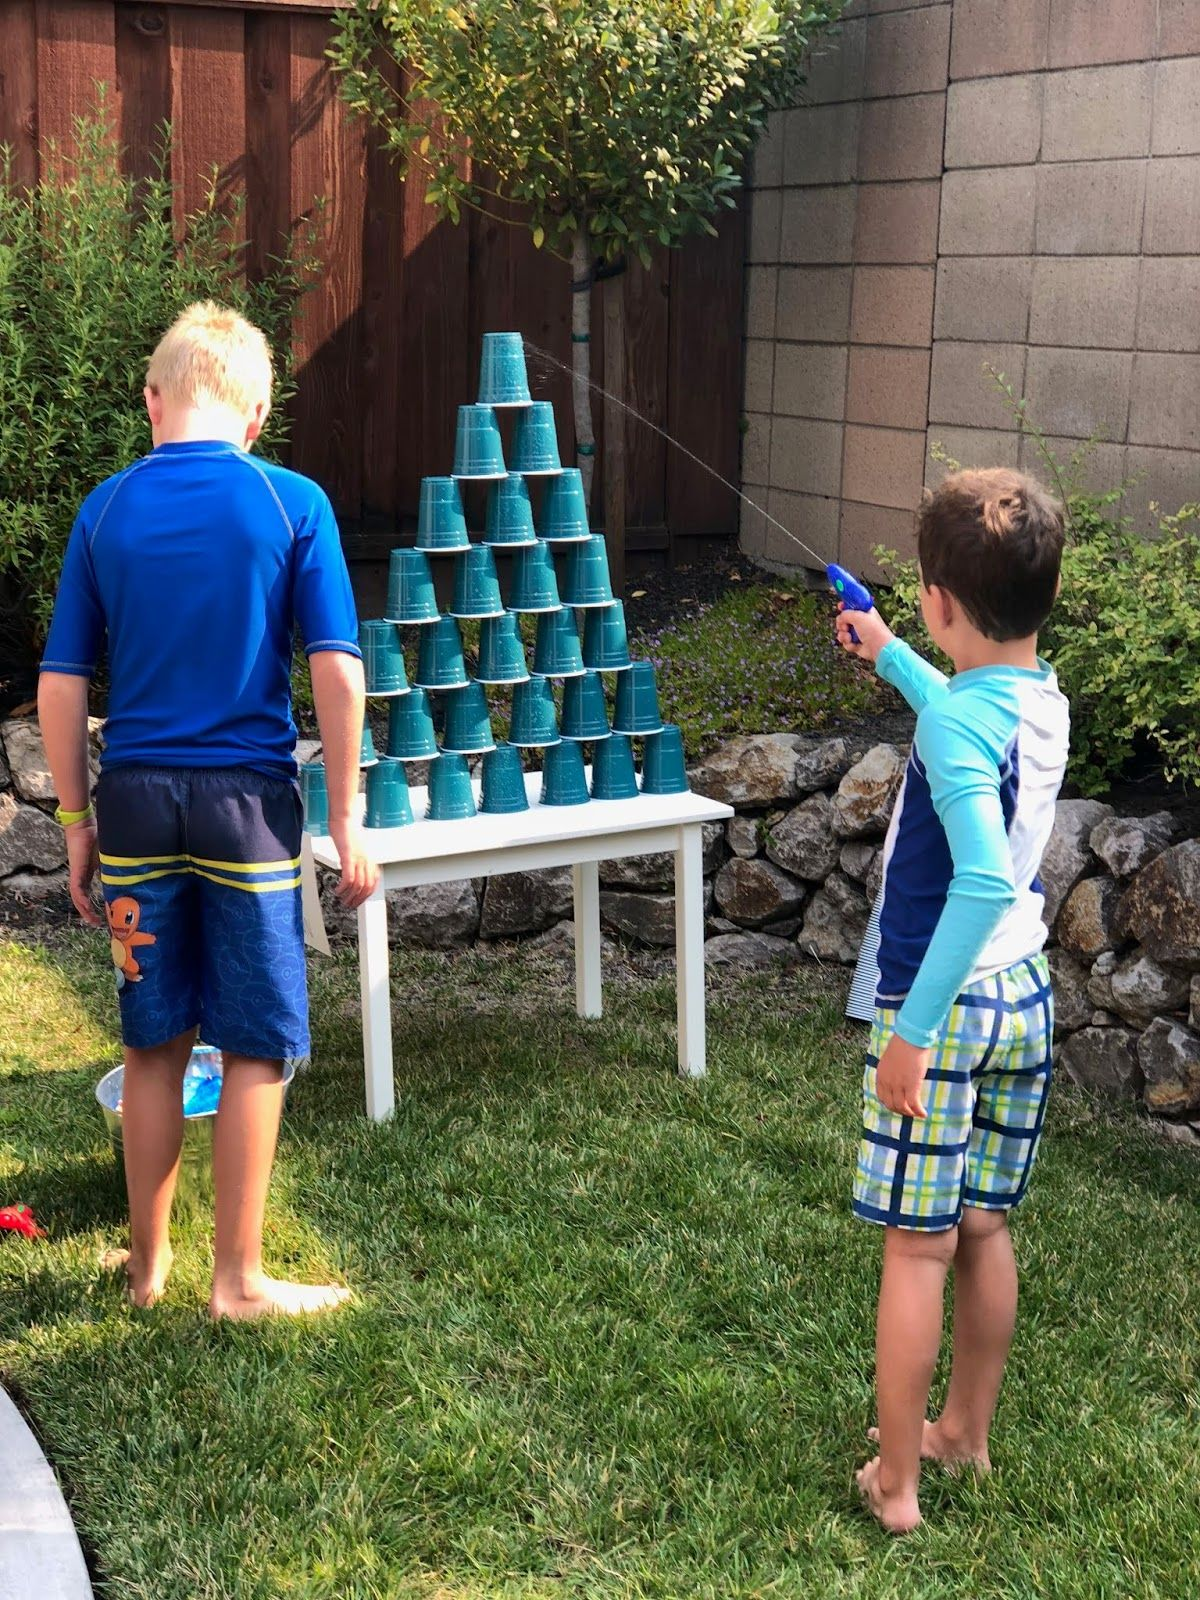 2 boys are standing in a garden in front of a white table on which a pyramid of blue cups is stacked. On eboy is pointing a blue water pistol at the pyramid